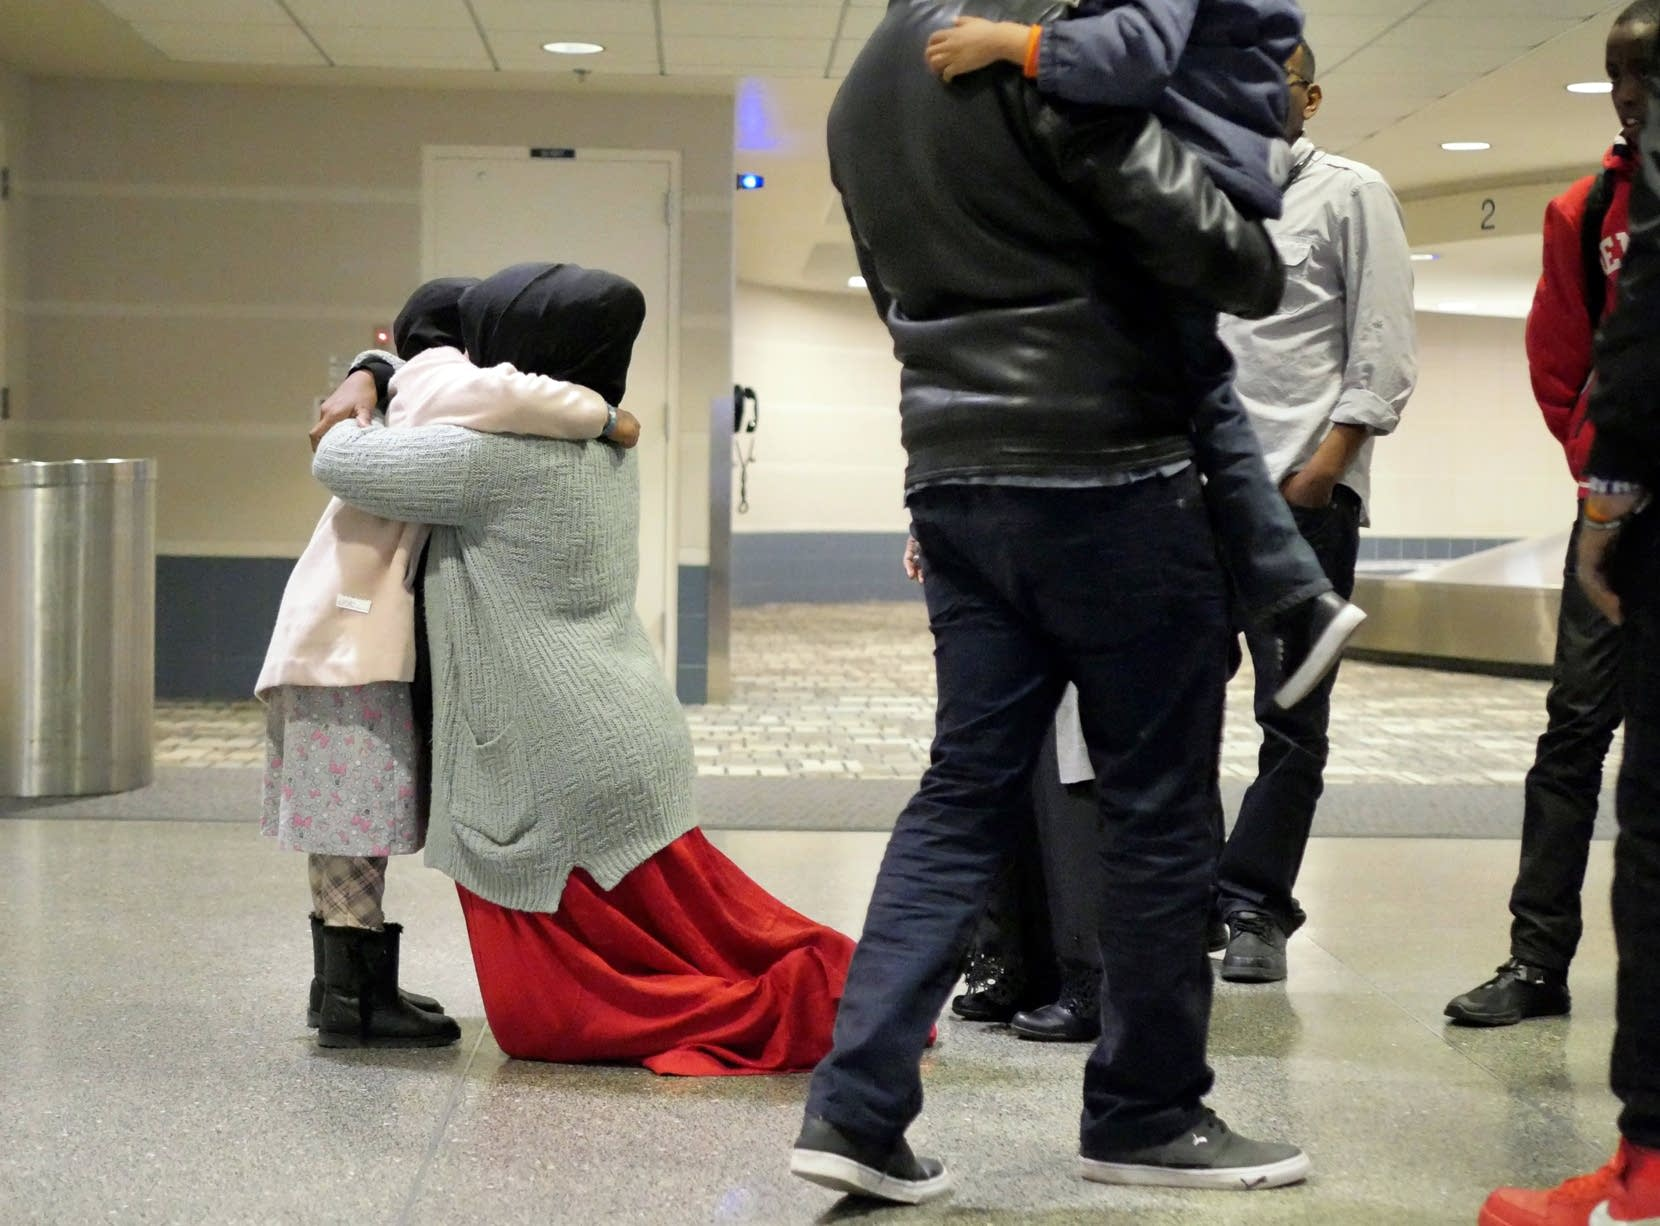 Muna Yasin hugged her daughter after she and her brother arrived.